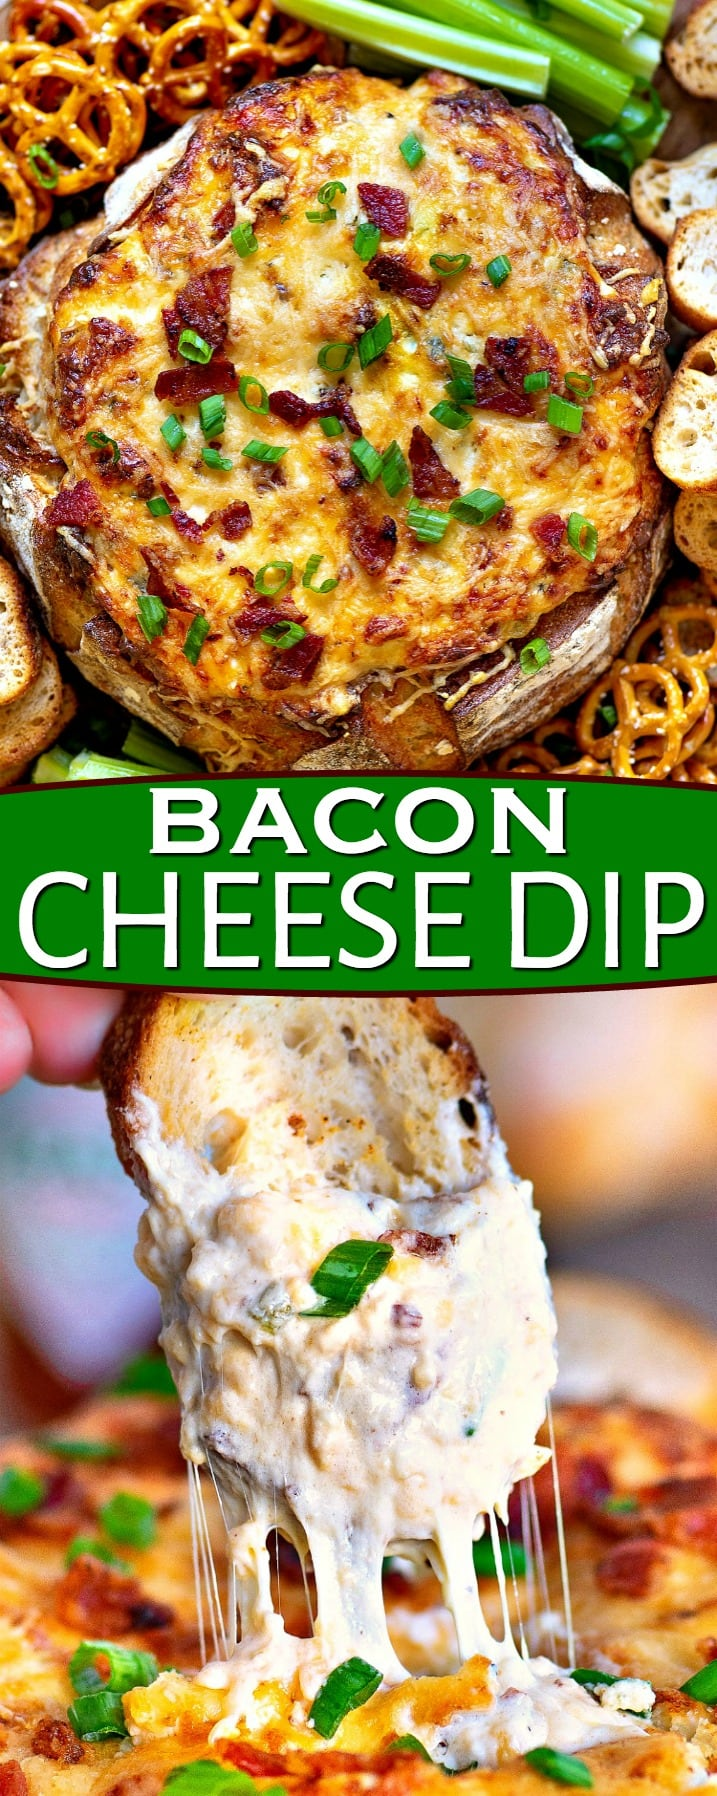 baked-bacon-cheese-dip-tabasco